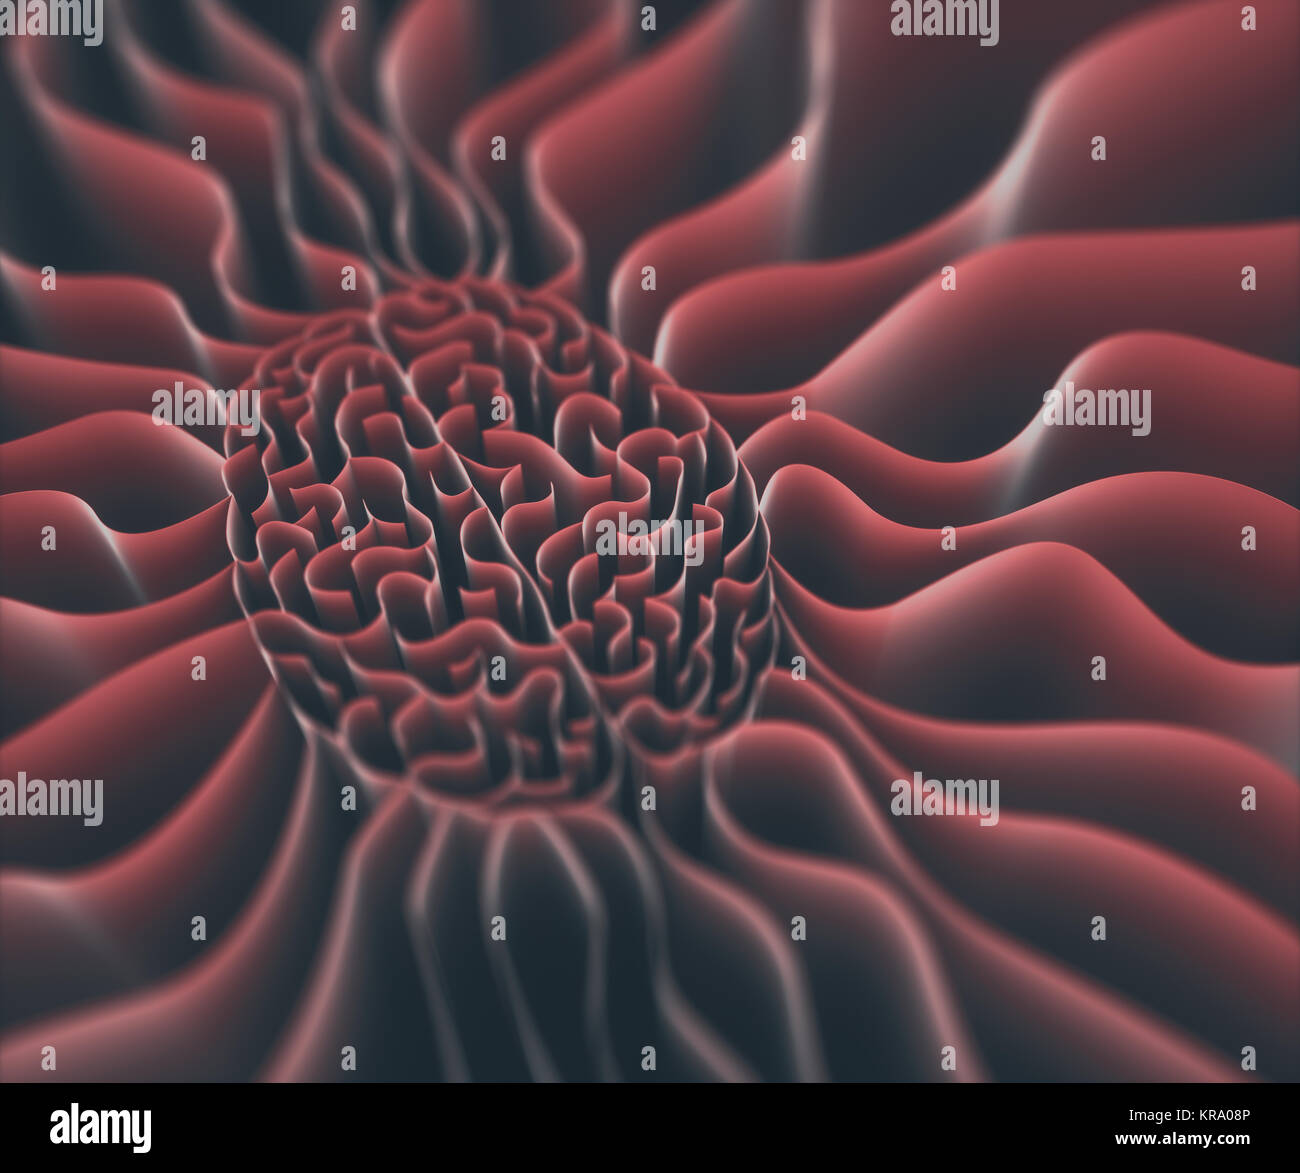 3D illustration. Walls shaped like a brain in a maze with no way out. - Stock Image